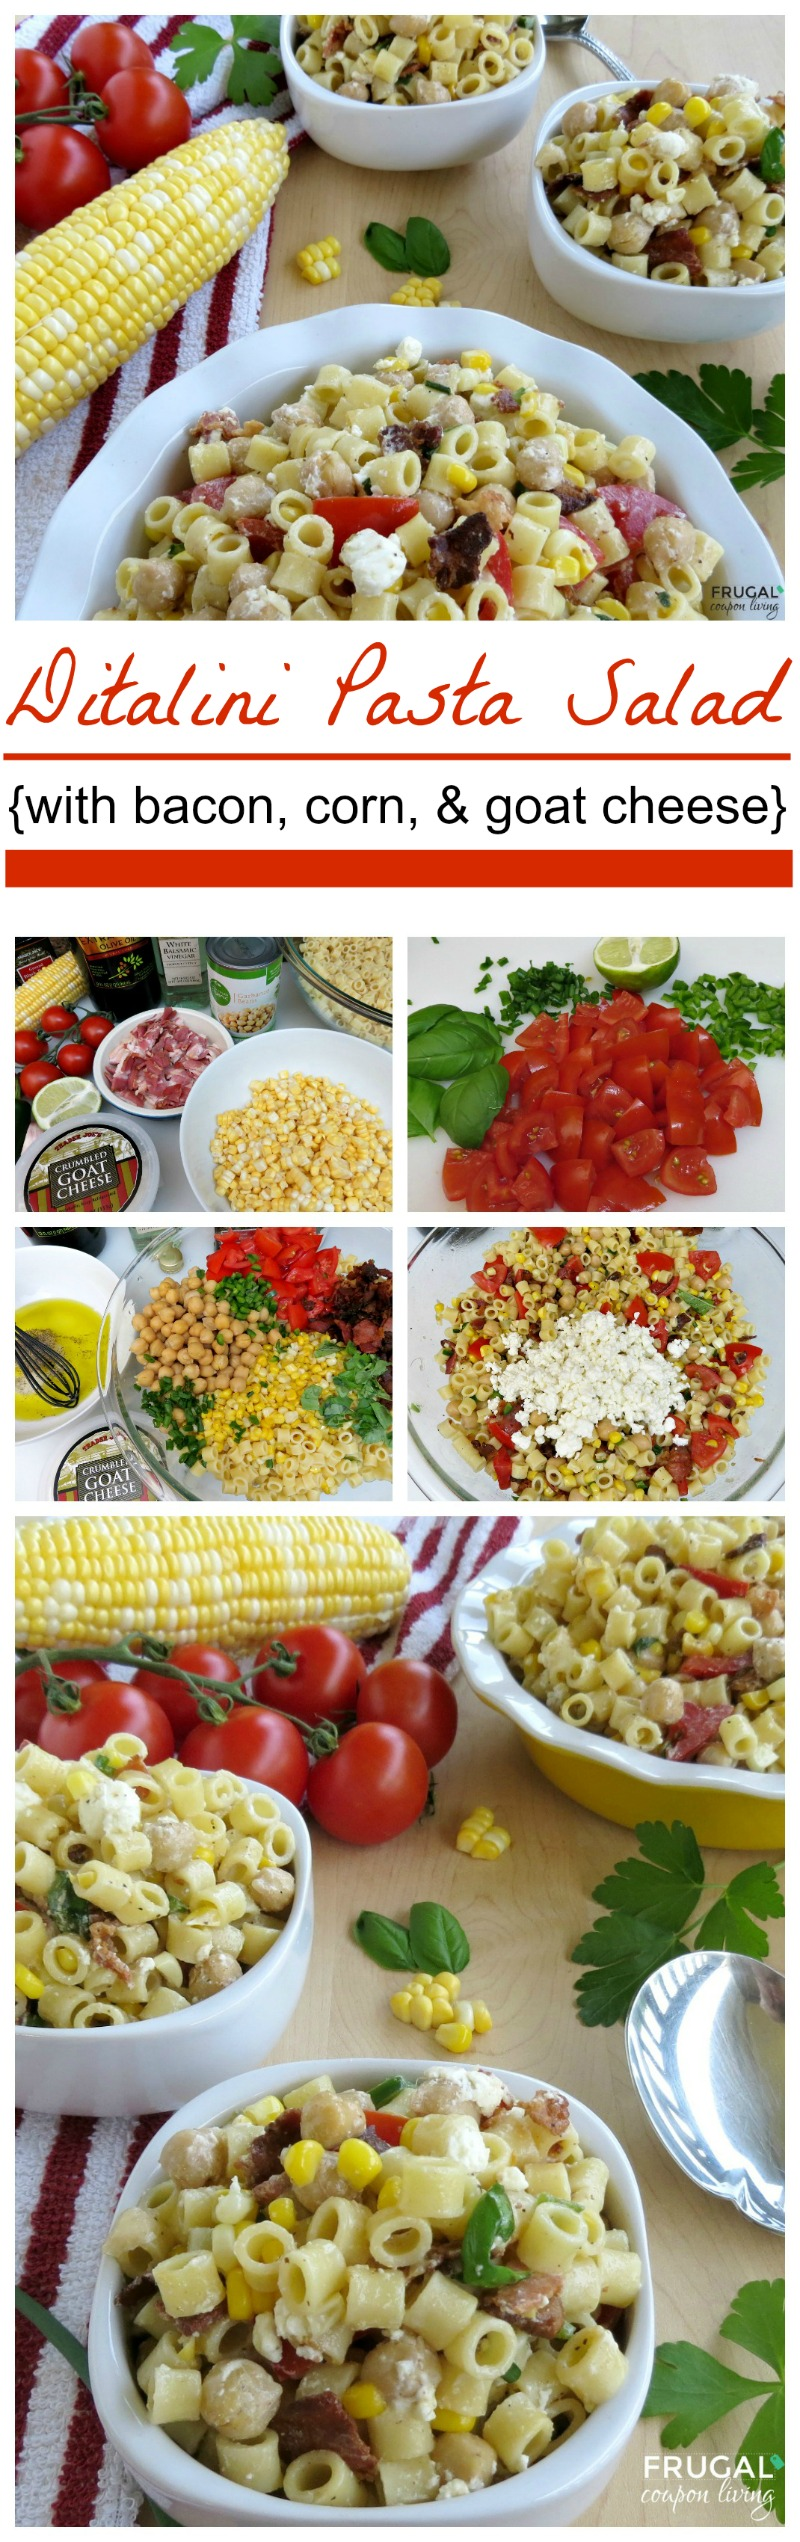 Bacon-and-corn-Ditalini-pasta-Salad-frugal-coupon-living